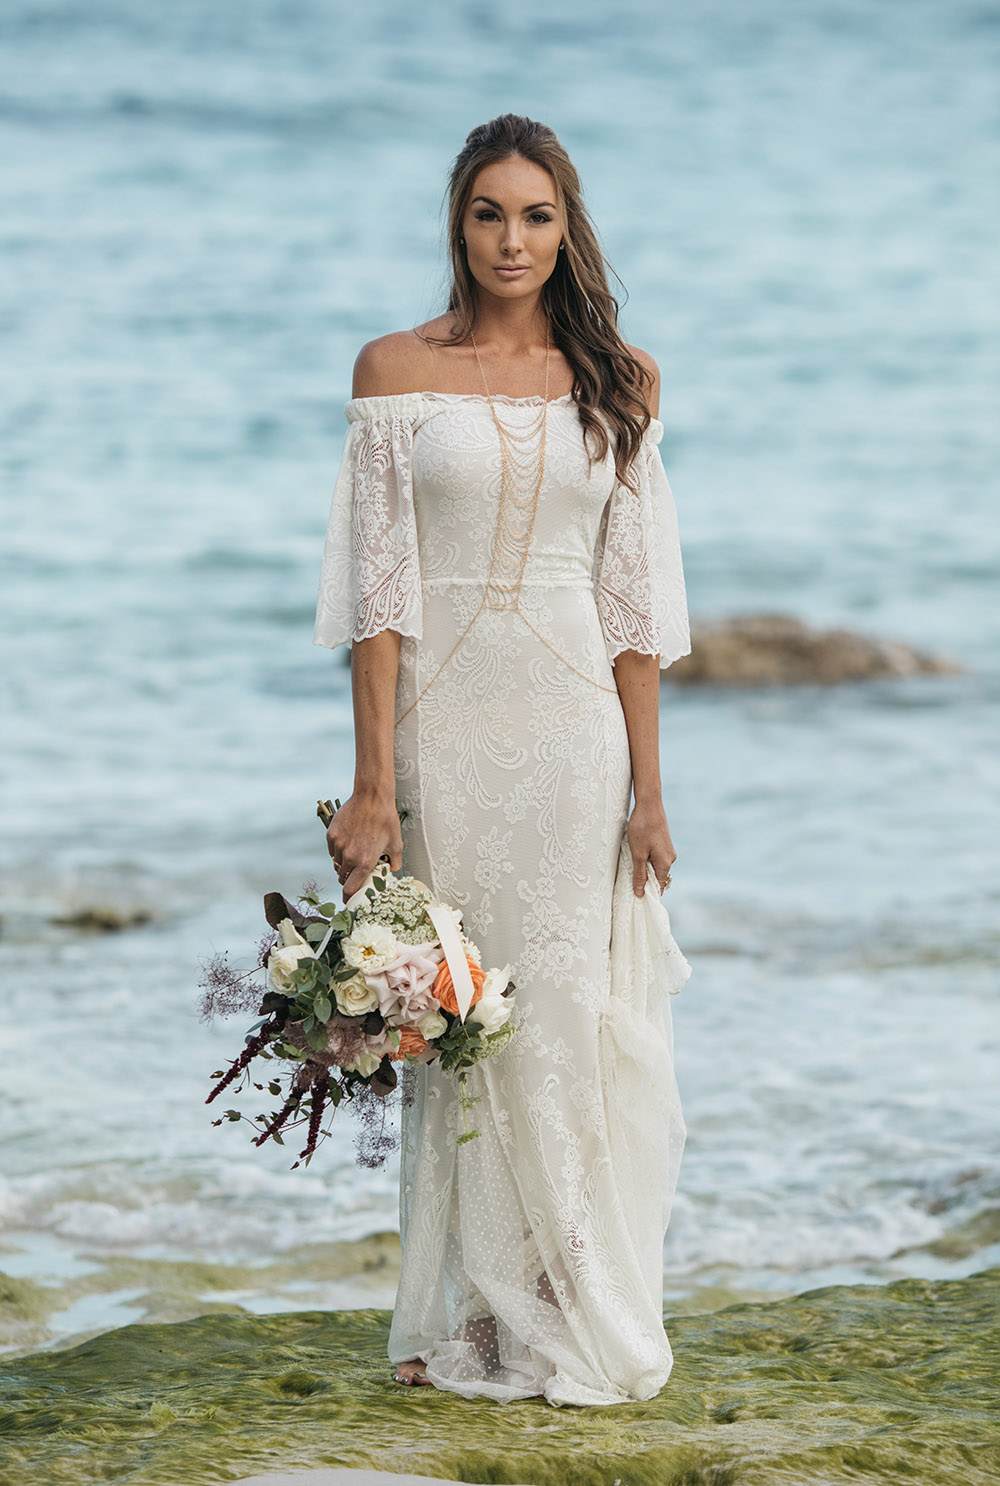 Tips On Choosing Beach Wedding Dresses For Destination Weddings